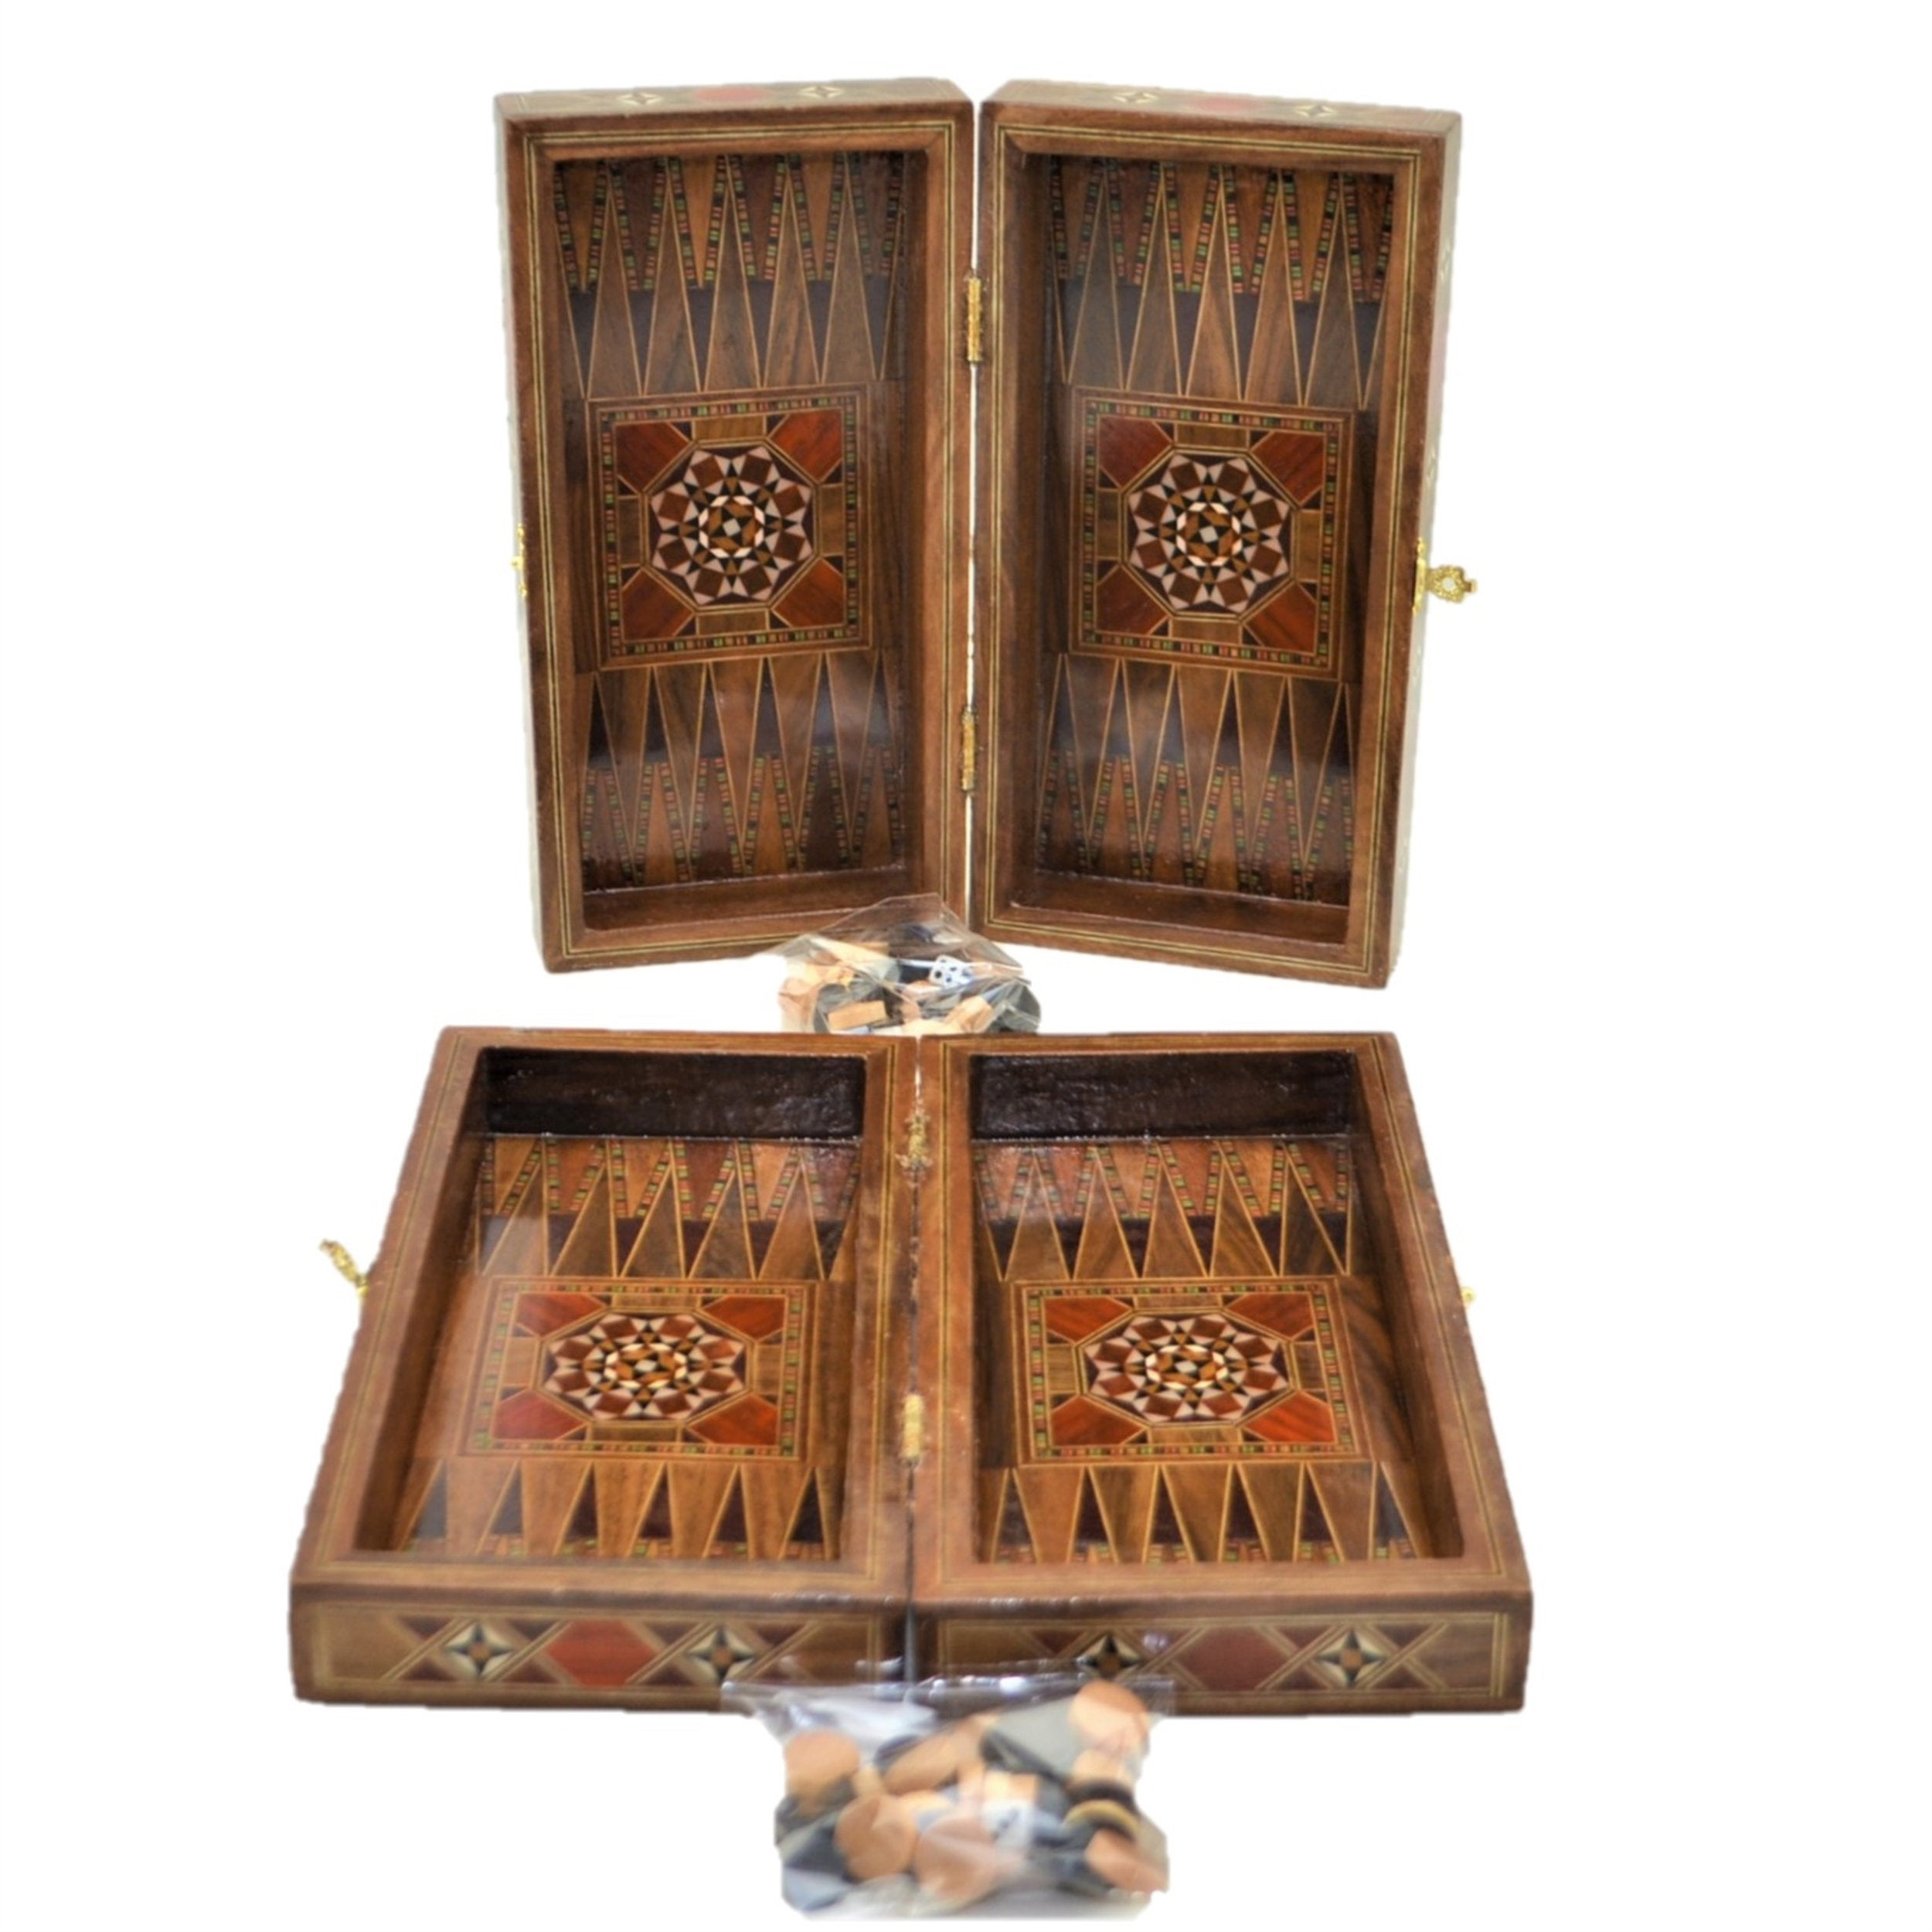 Vintage Game Set Handmade Motif Natural Solid Wooden Backgammon, Chess Board, Checkers Sets For Kids And Adults Small Size